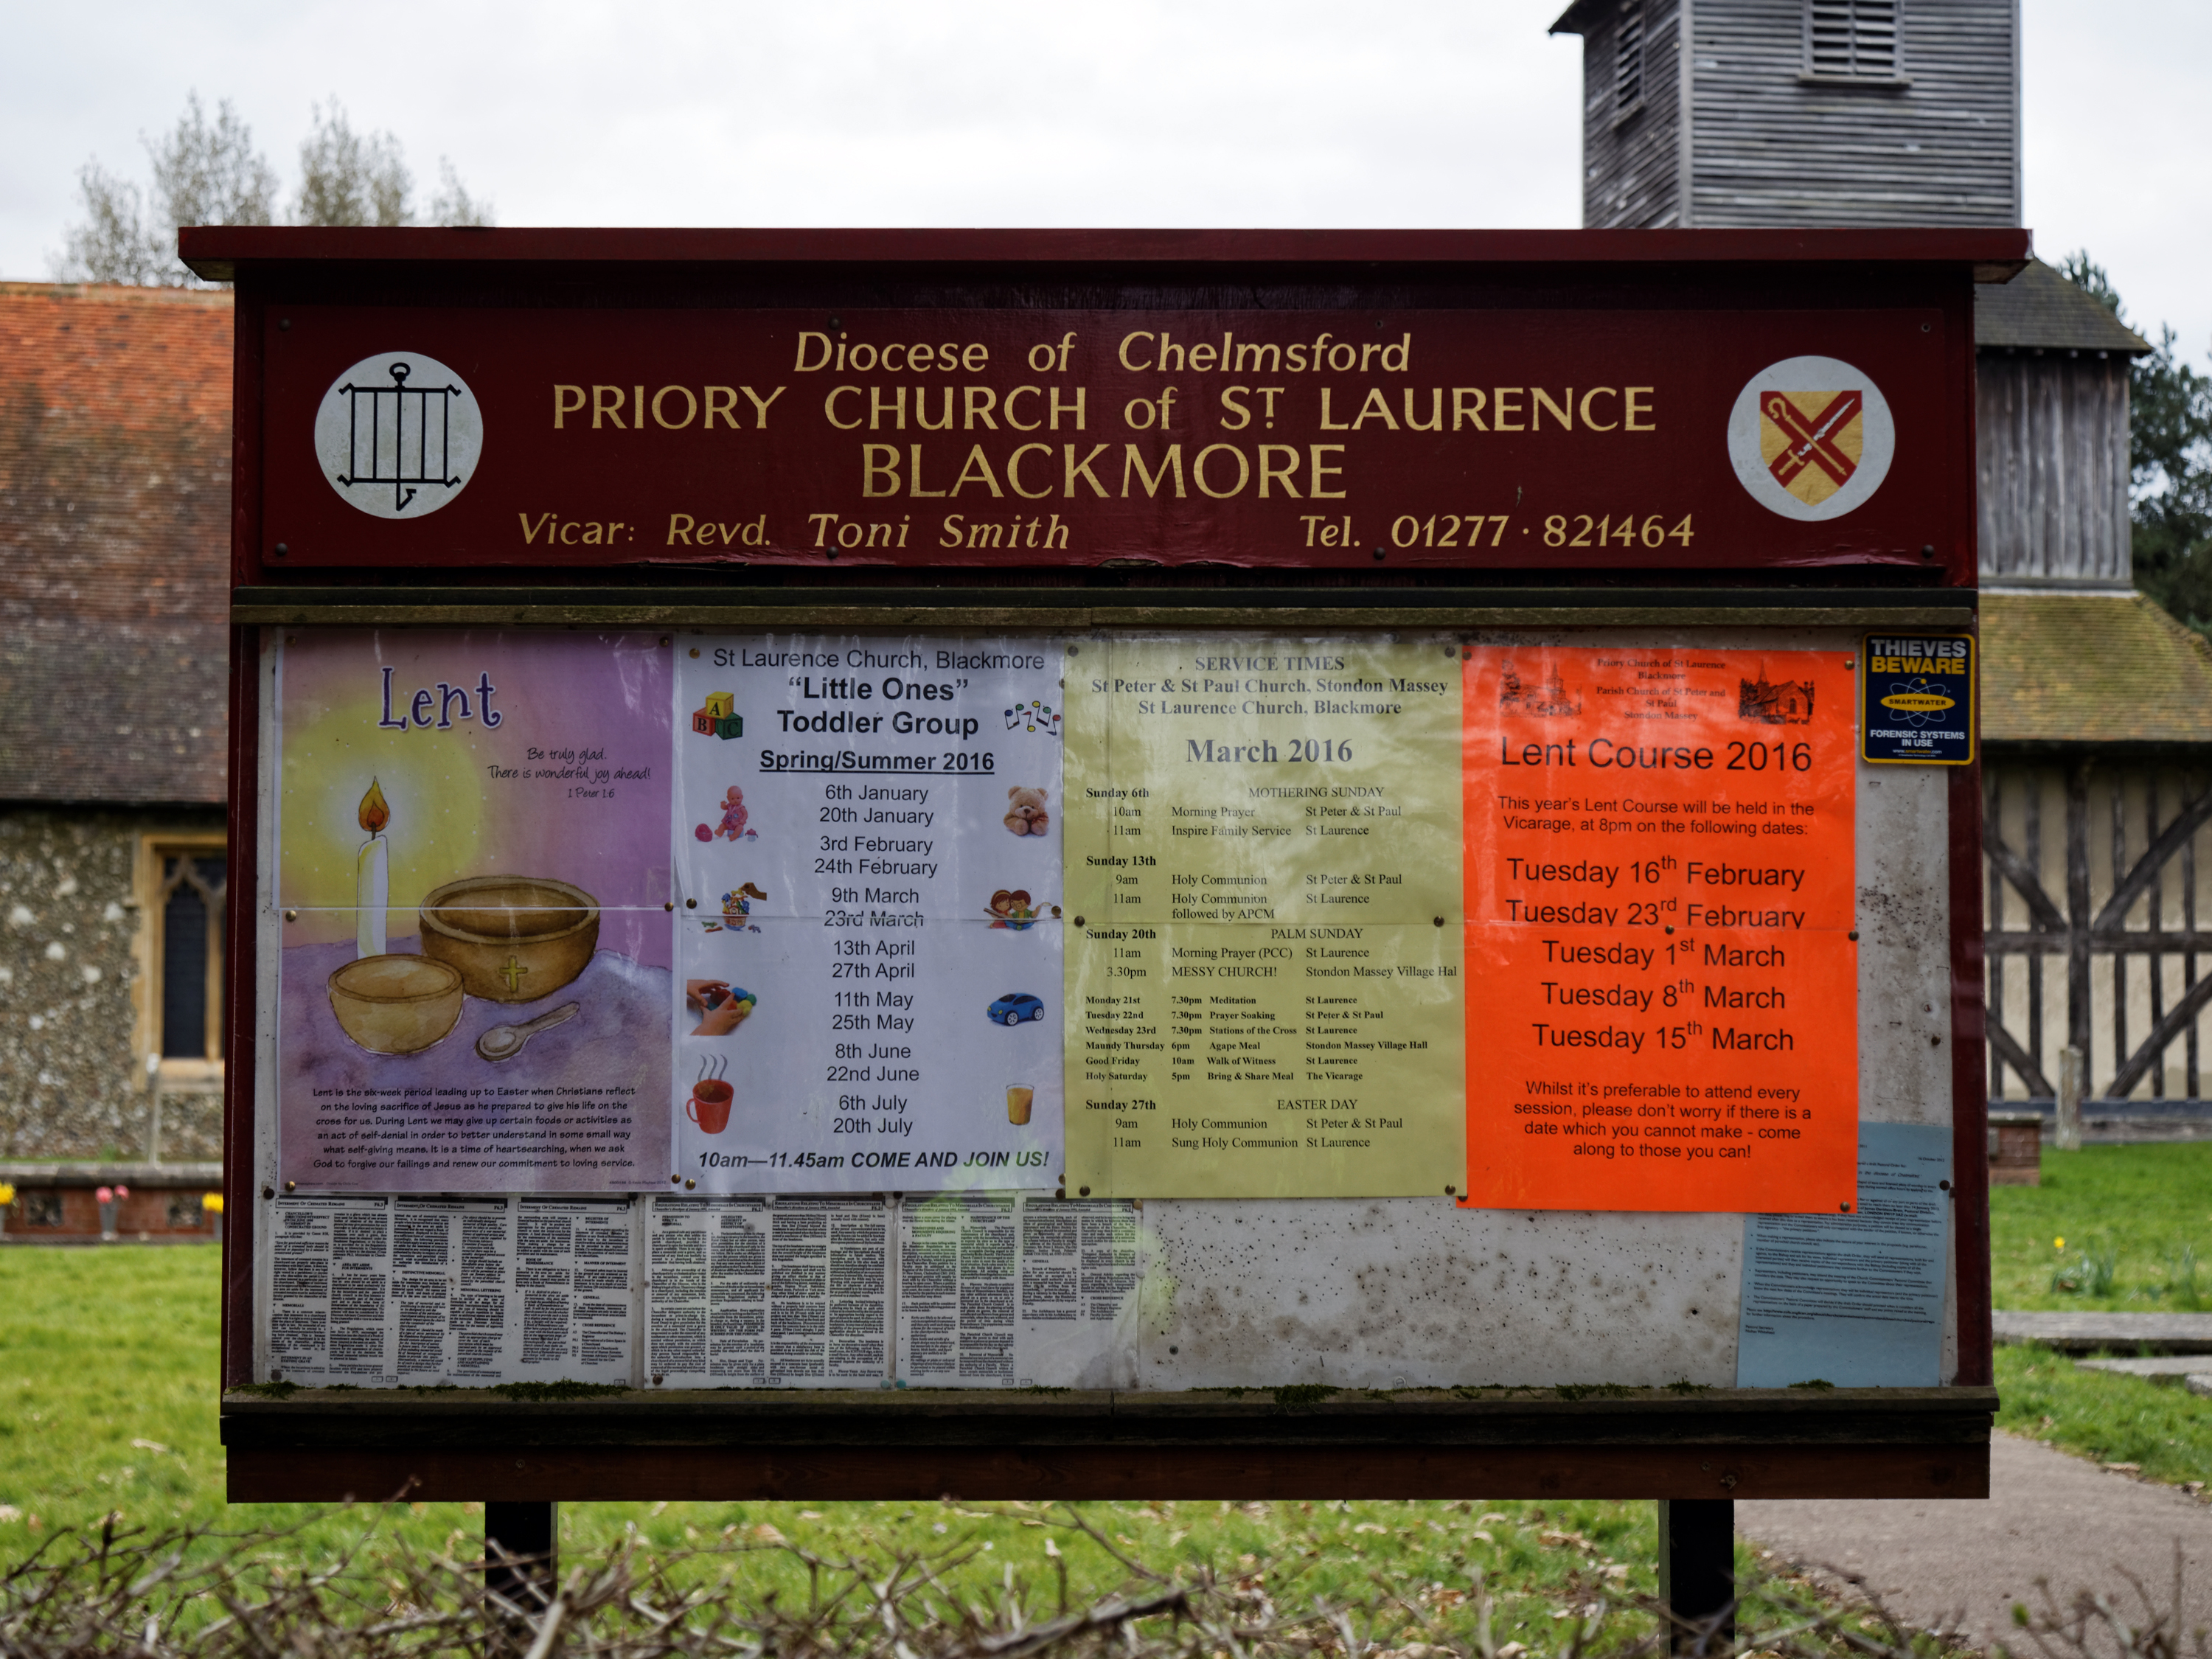 File:Church Of St Laurence Blackmore Essex England   Church Exterior Notice  Board